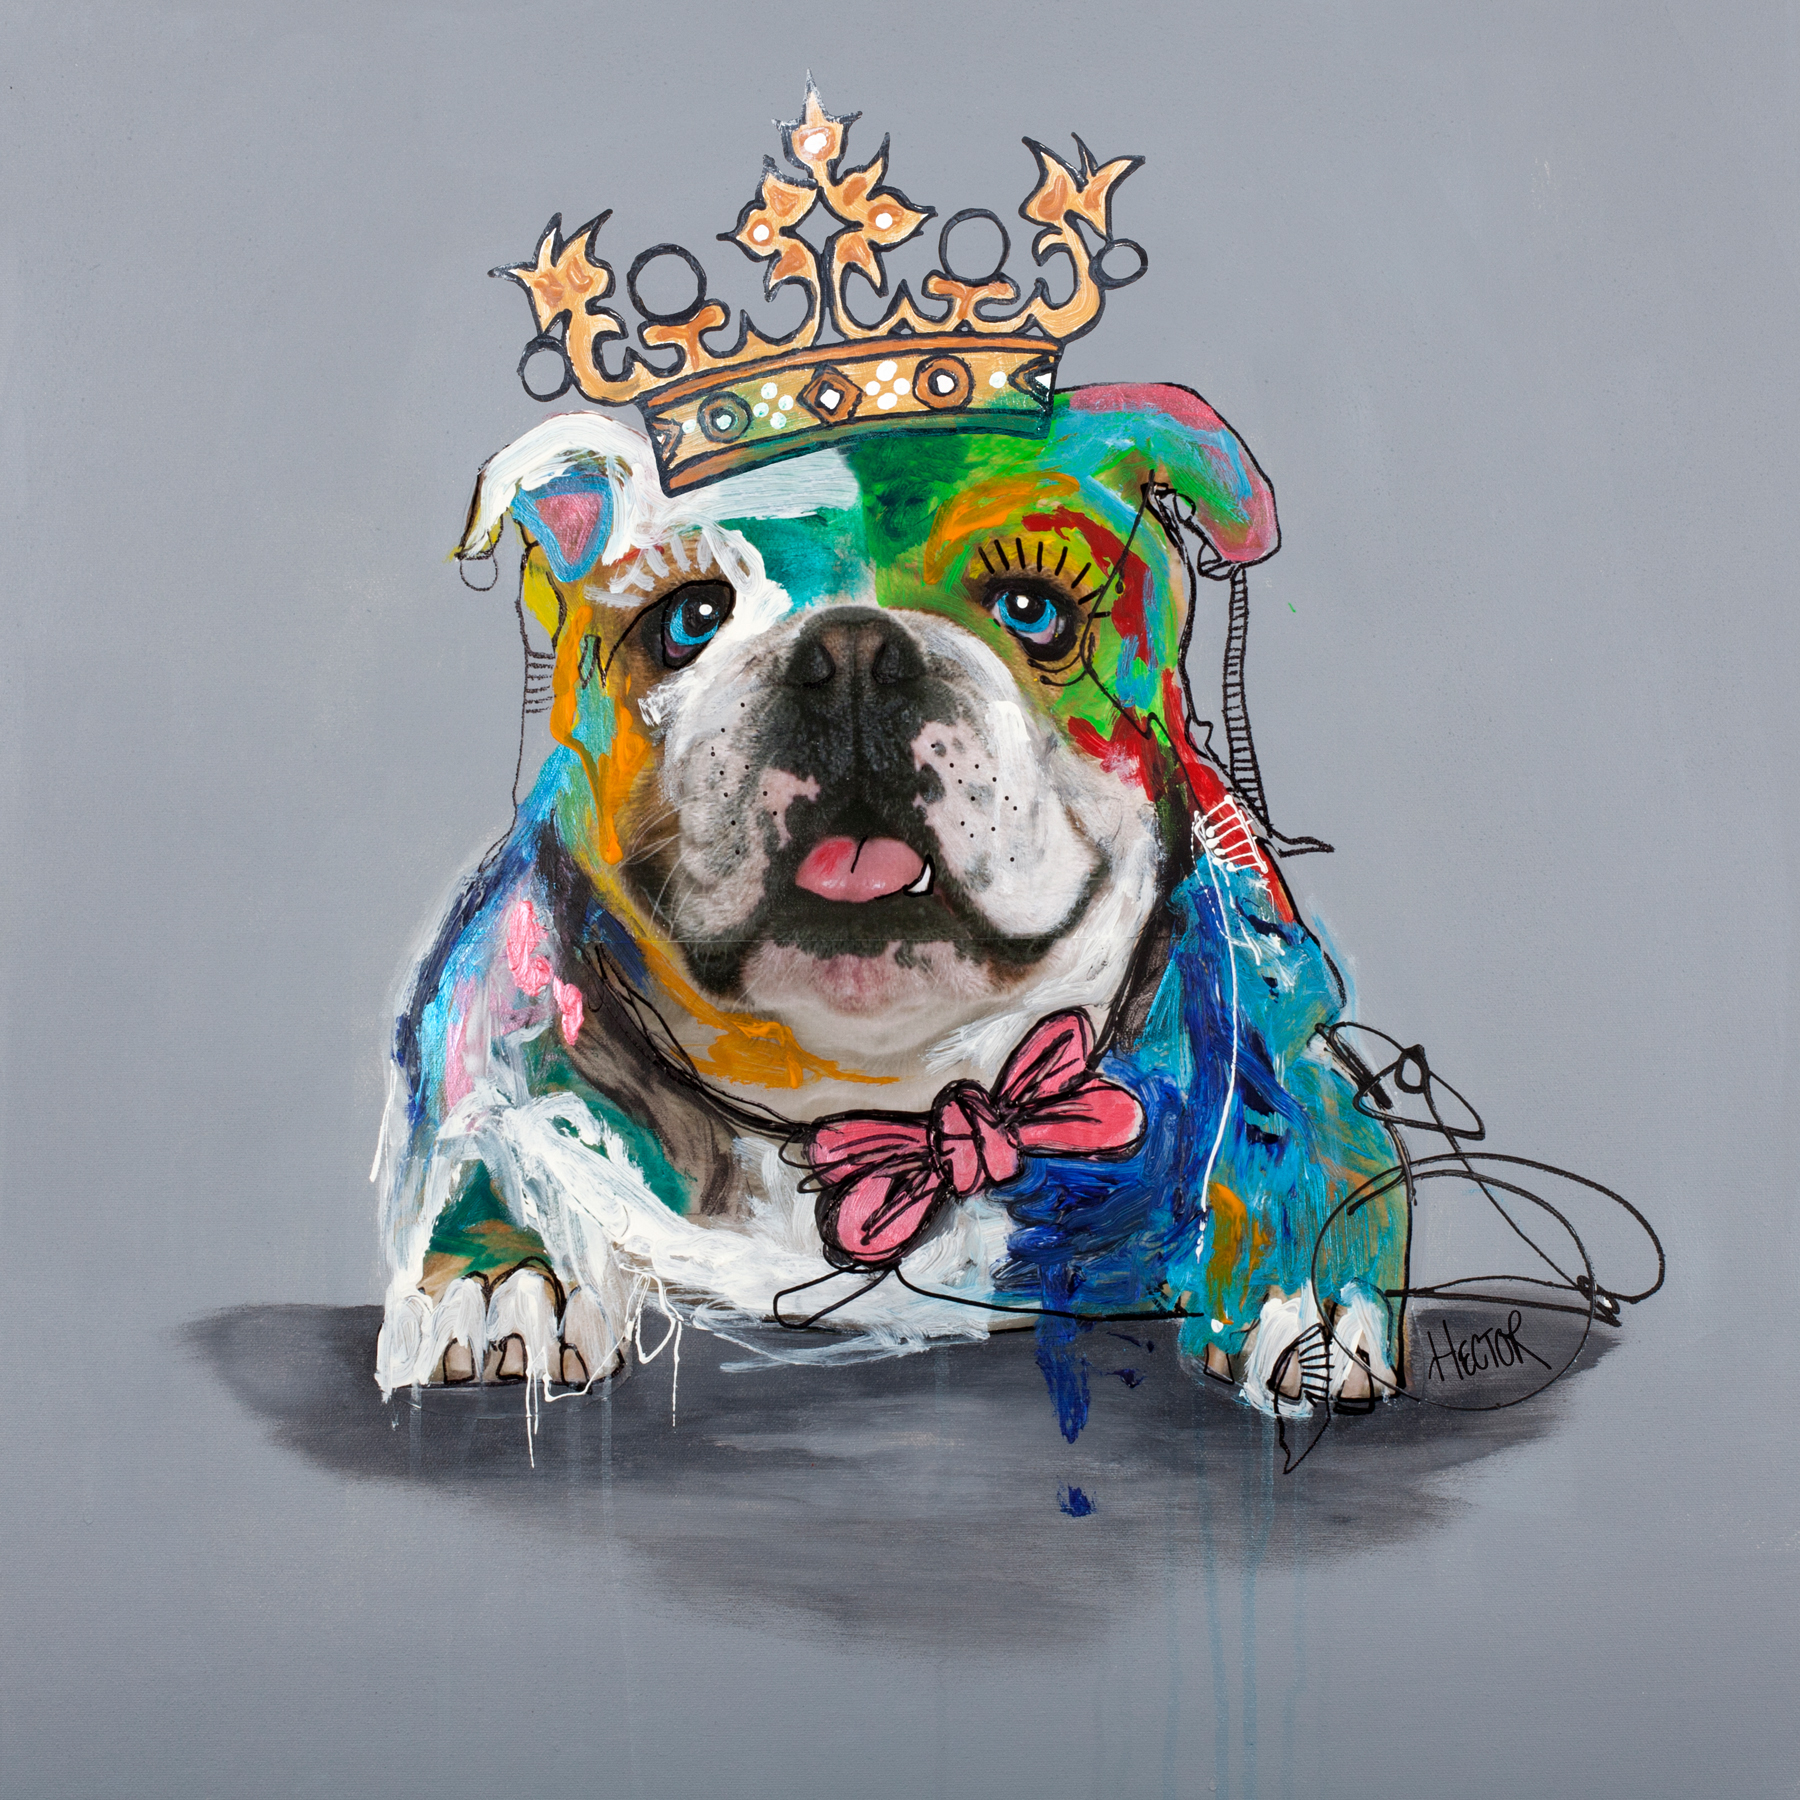 BULLDOG 2 - Printed Wall Deco - 70 x 70 cm